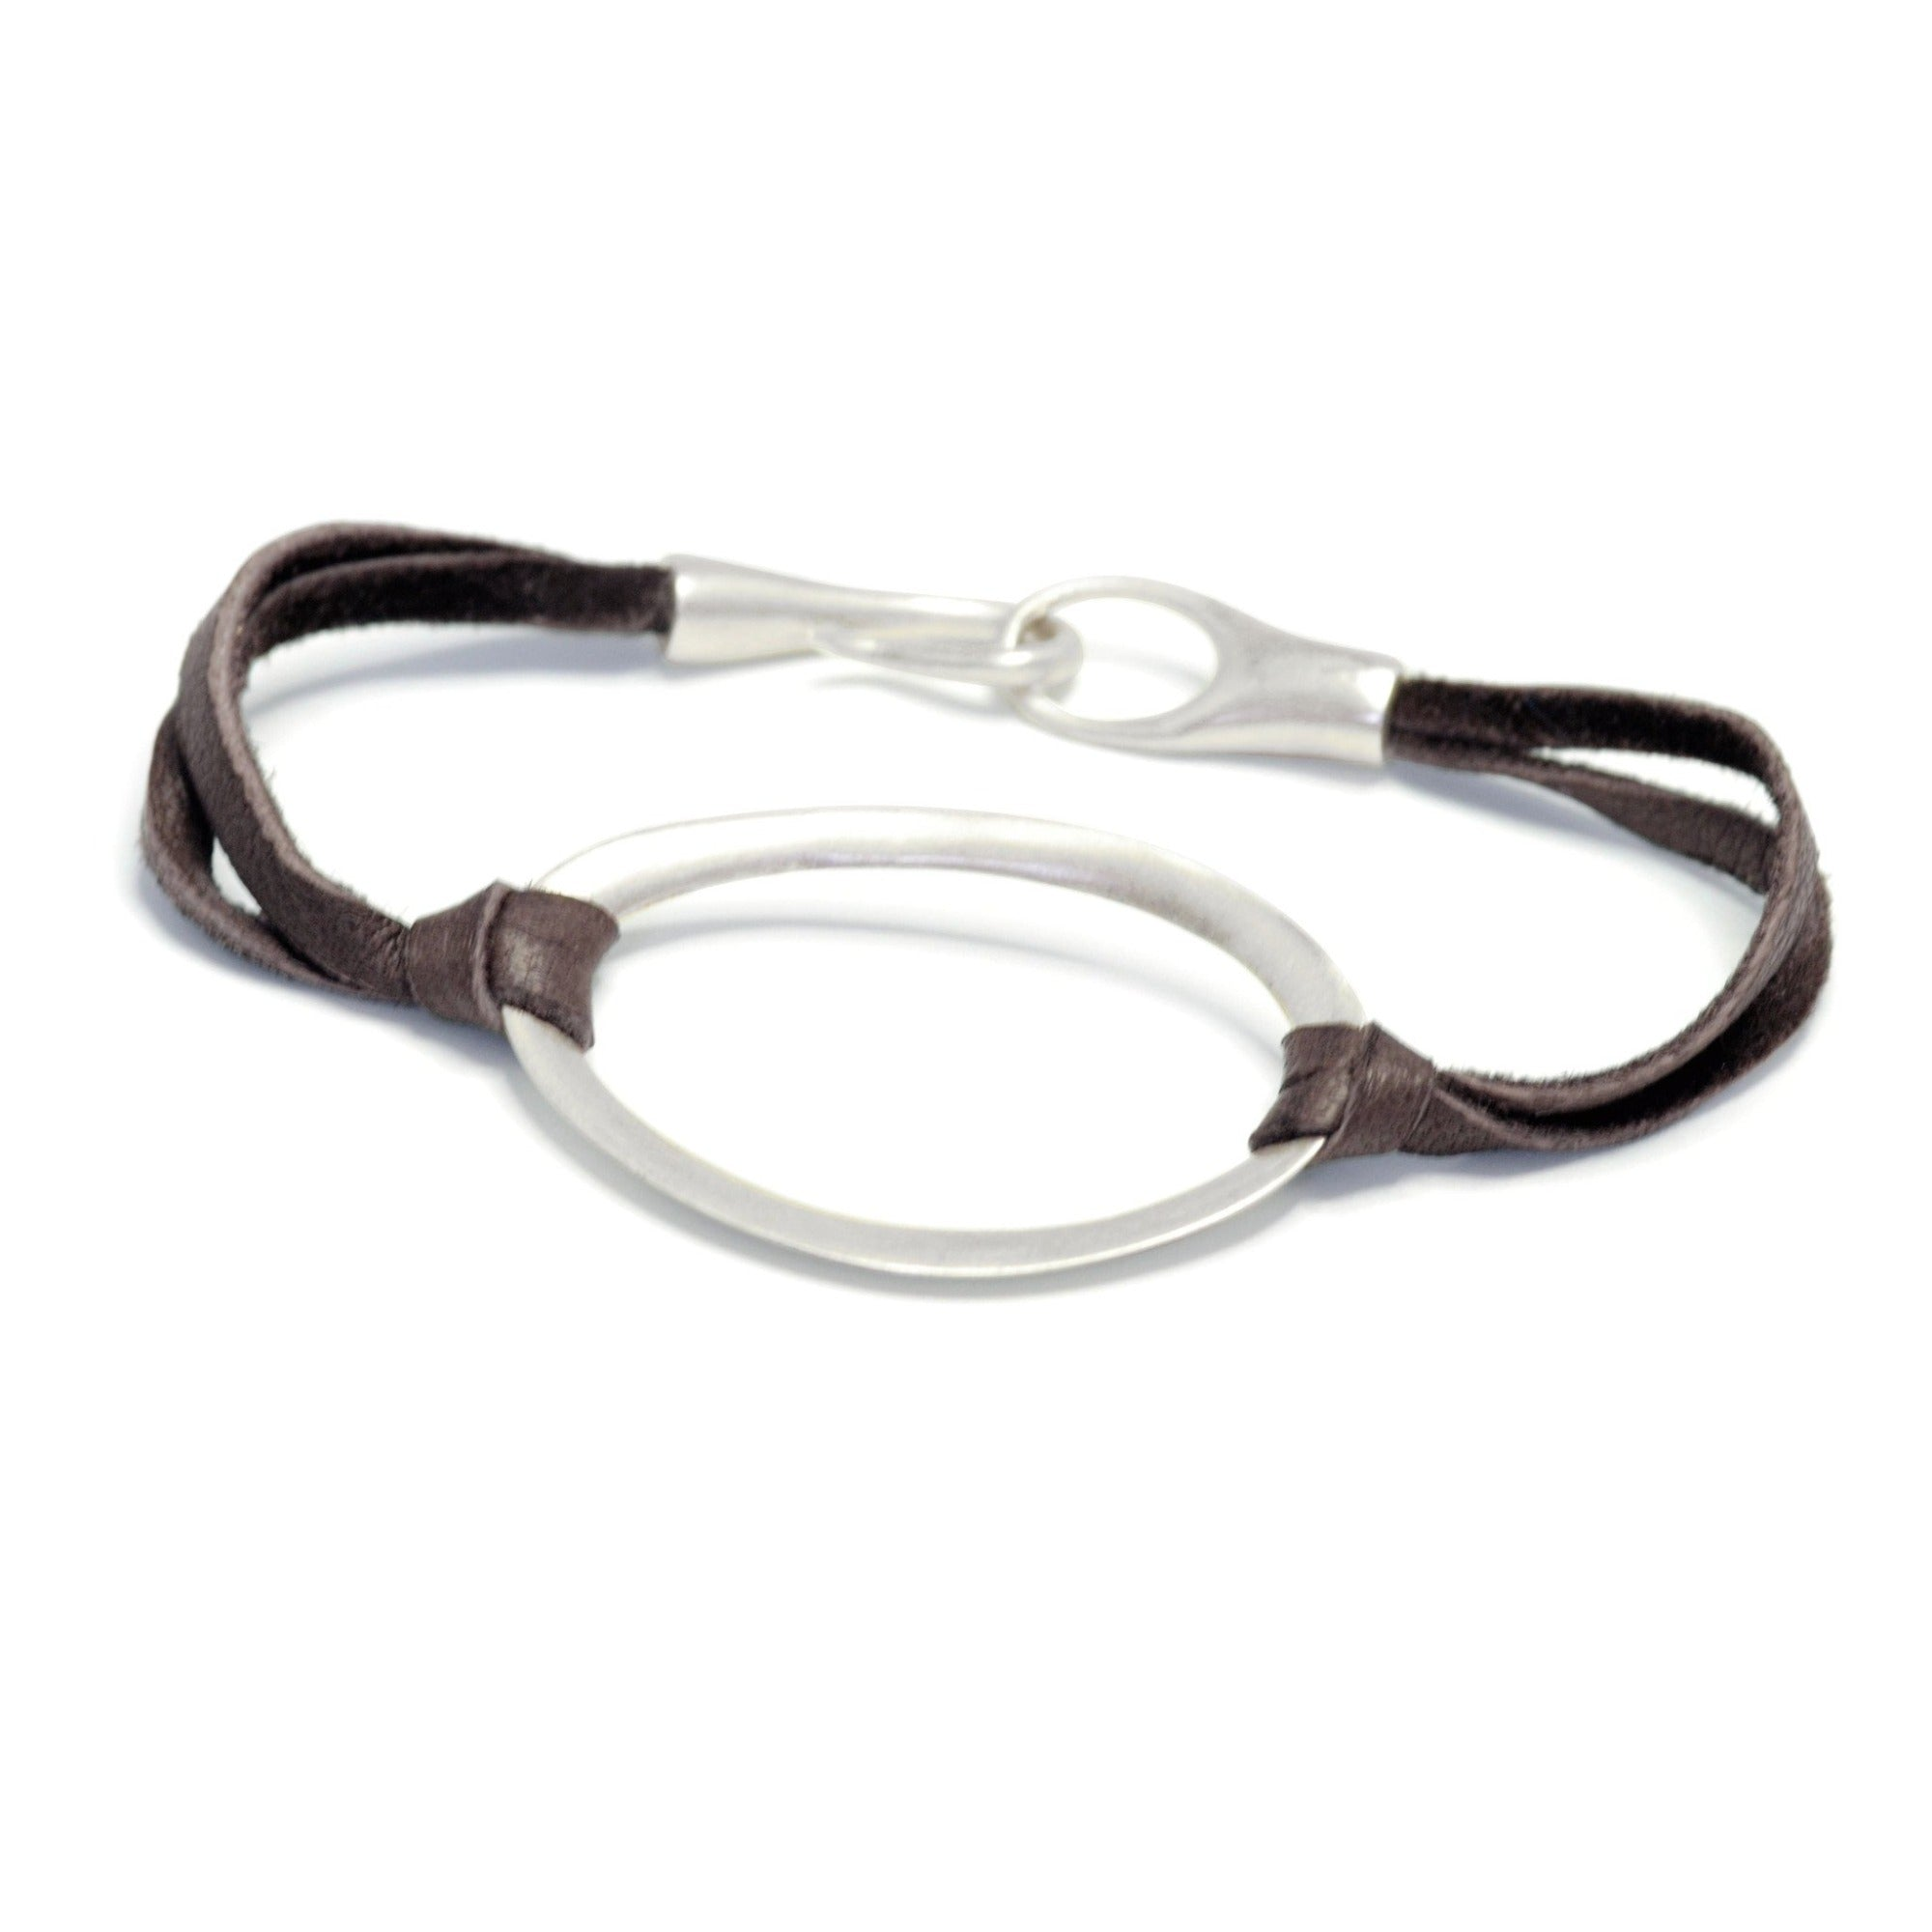 "sterling silver on brown leather / S (6"") oculus id bracelet"